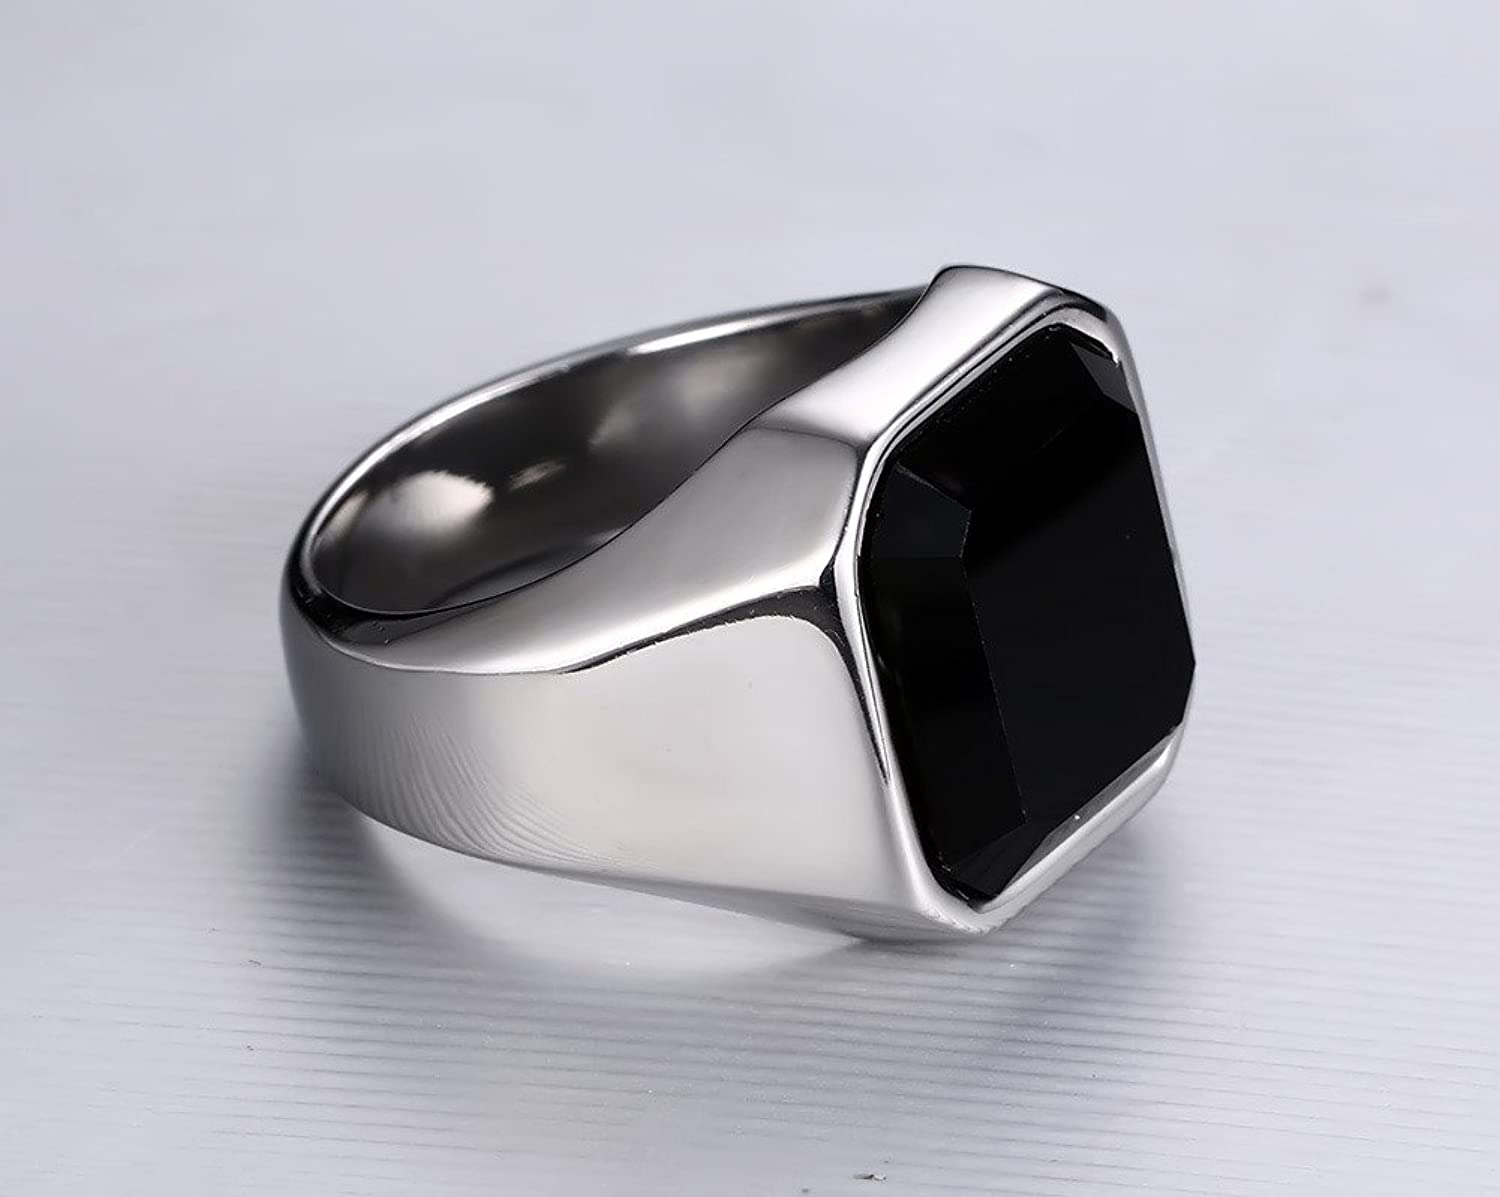 Mealguet Jewelry Fashion Stainless Steel Signet Rings with Black ...